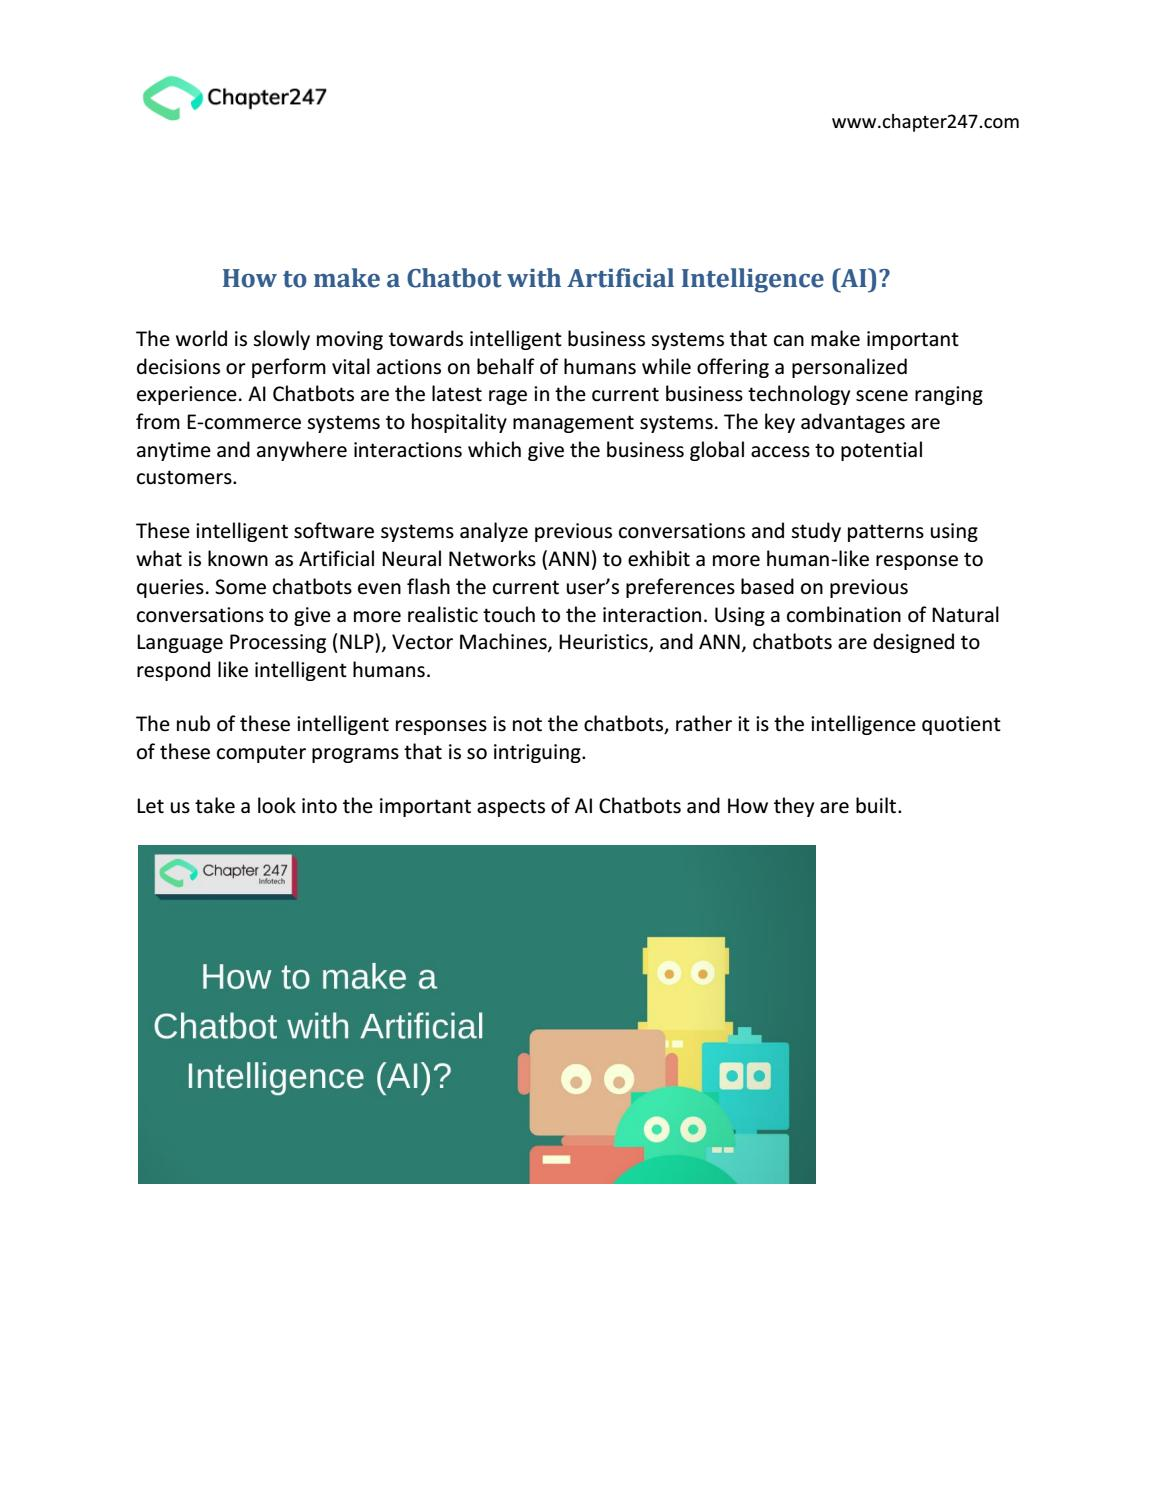 How to make a Chatbot with Artificial Intelligence (AI)?